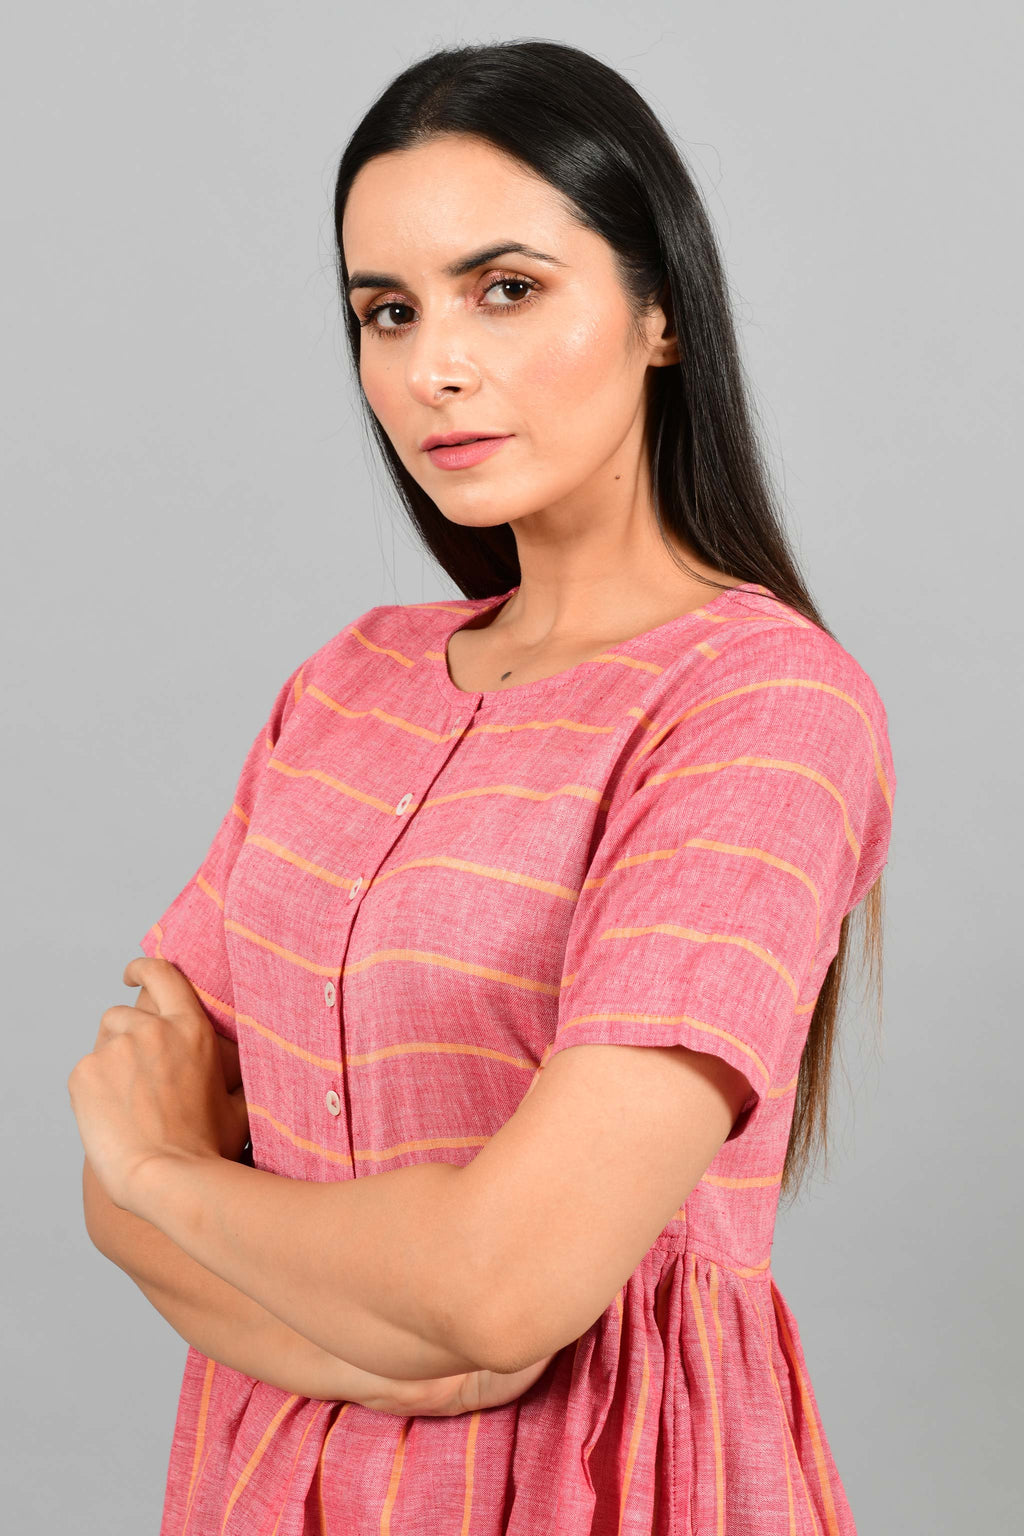 Portrait pose of an Indian female womenswear fashion model in a red chambray handspun and handwoven khadi cotton with orange stripes by Cotton Rack. The dress has front buttoned yoke and gathers at waist.